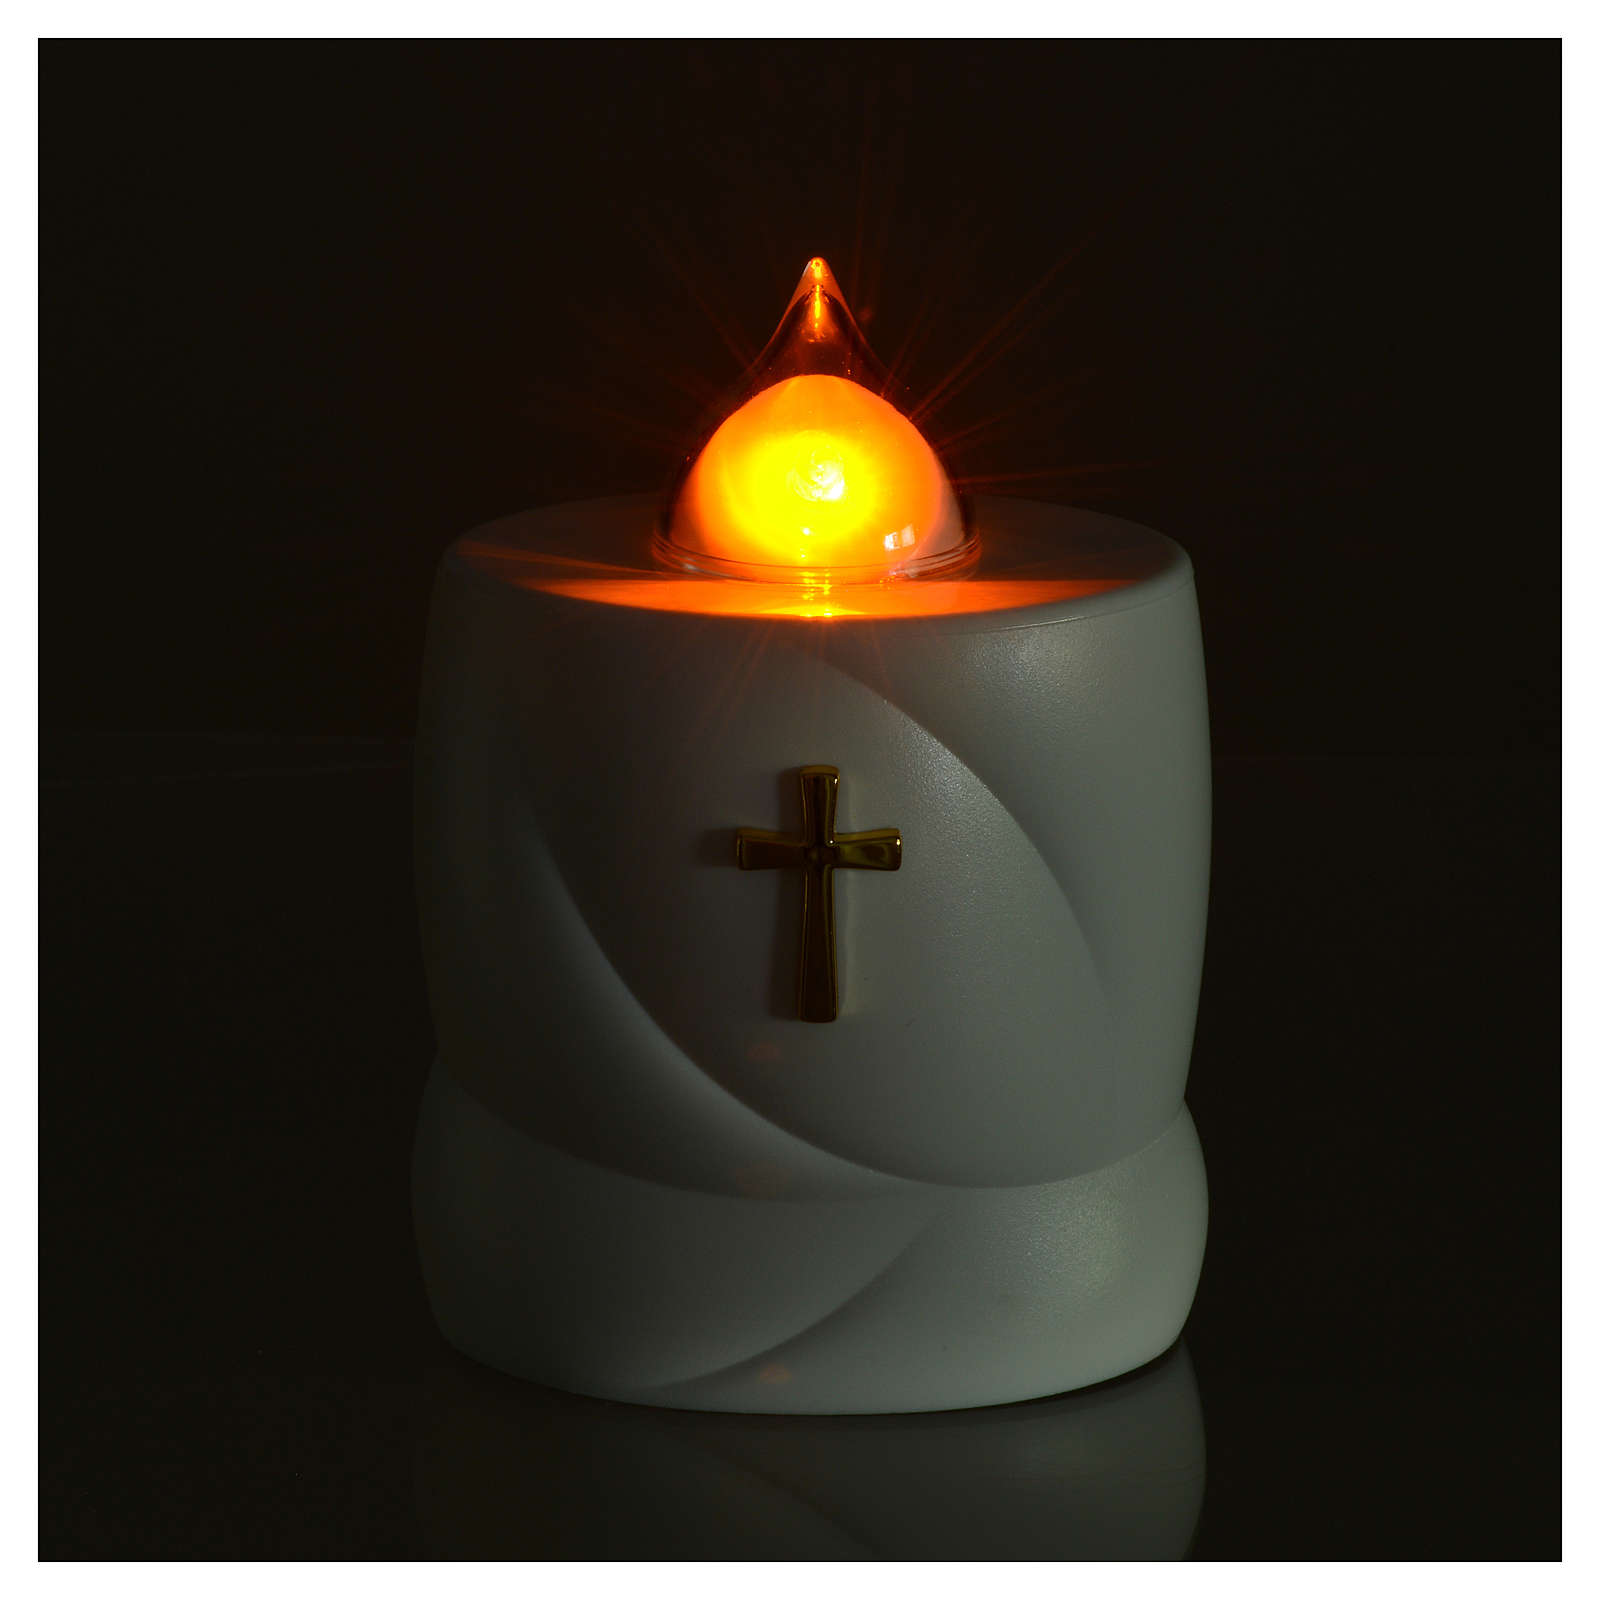 Lumada electric candle, white with cross and yellow flame 3